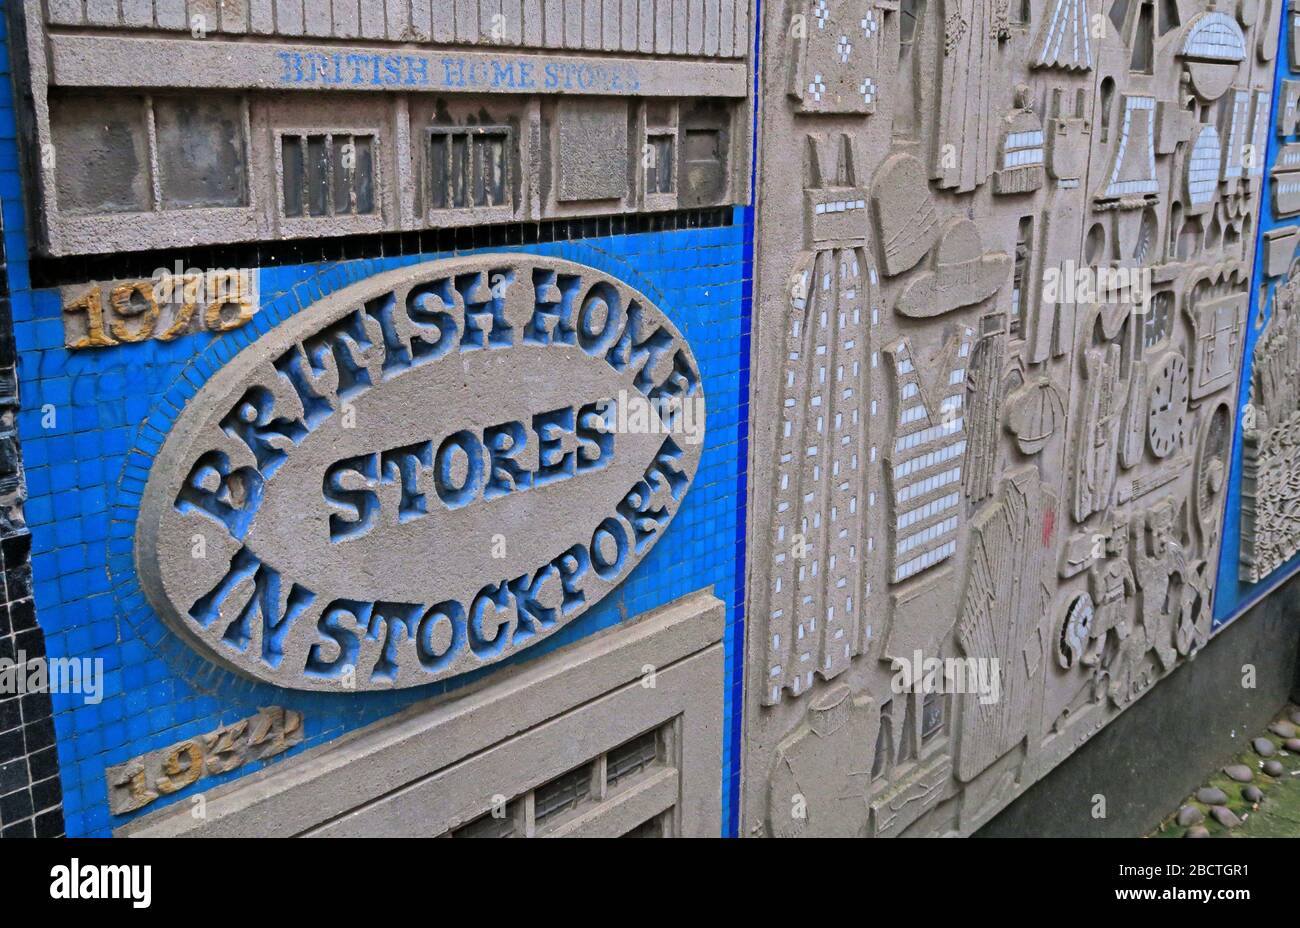 HotpixUK,@HotpixUk,GoTonySmith,Greater Manchester,Manchester,Cheshire,England,UK,town,British Home Stores,1934,wall,artwork,retail,failure,lost,retail names,company,companies,blue,yellow,Stockport Town Centre,SK1 1PD,art,icon,iconic,Arcadia Group,Al Mana Group,Retail Acquisitions,BritishHomeStore London 1928,Philip Green,Storehouse Plc,disaster